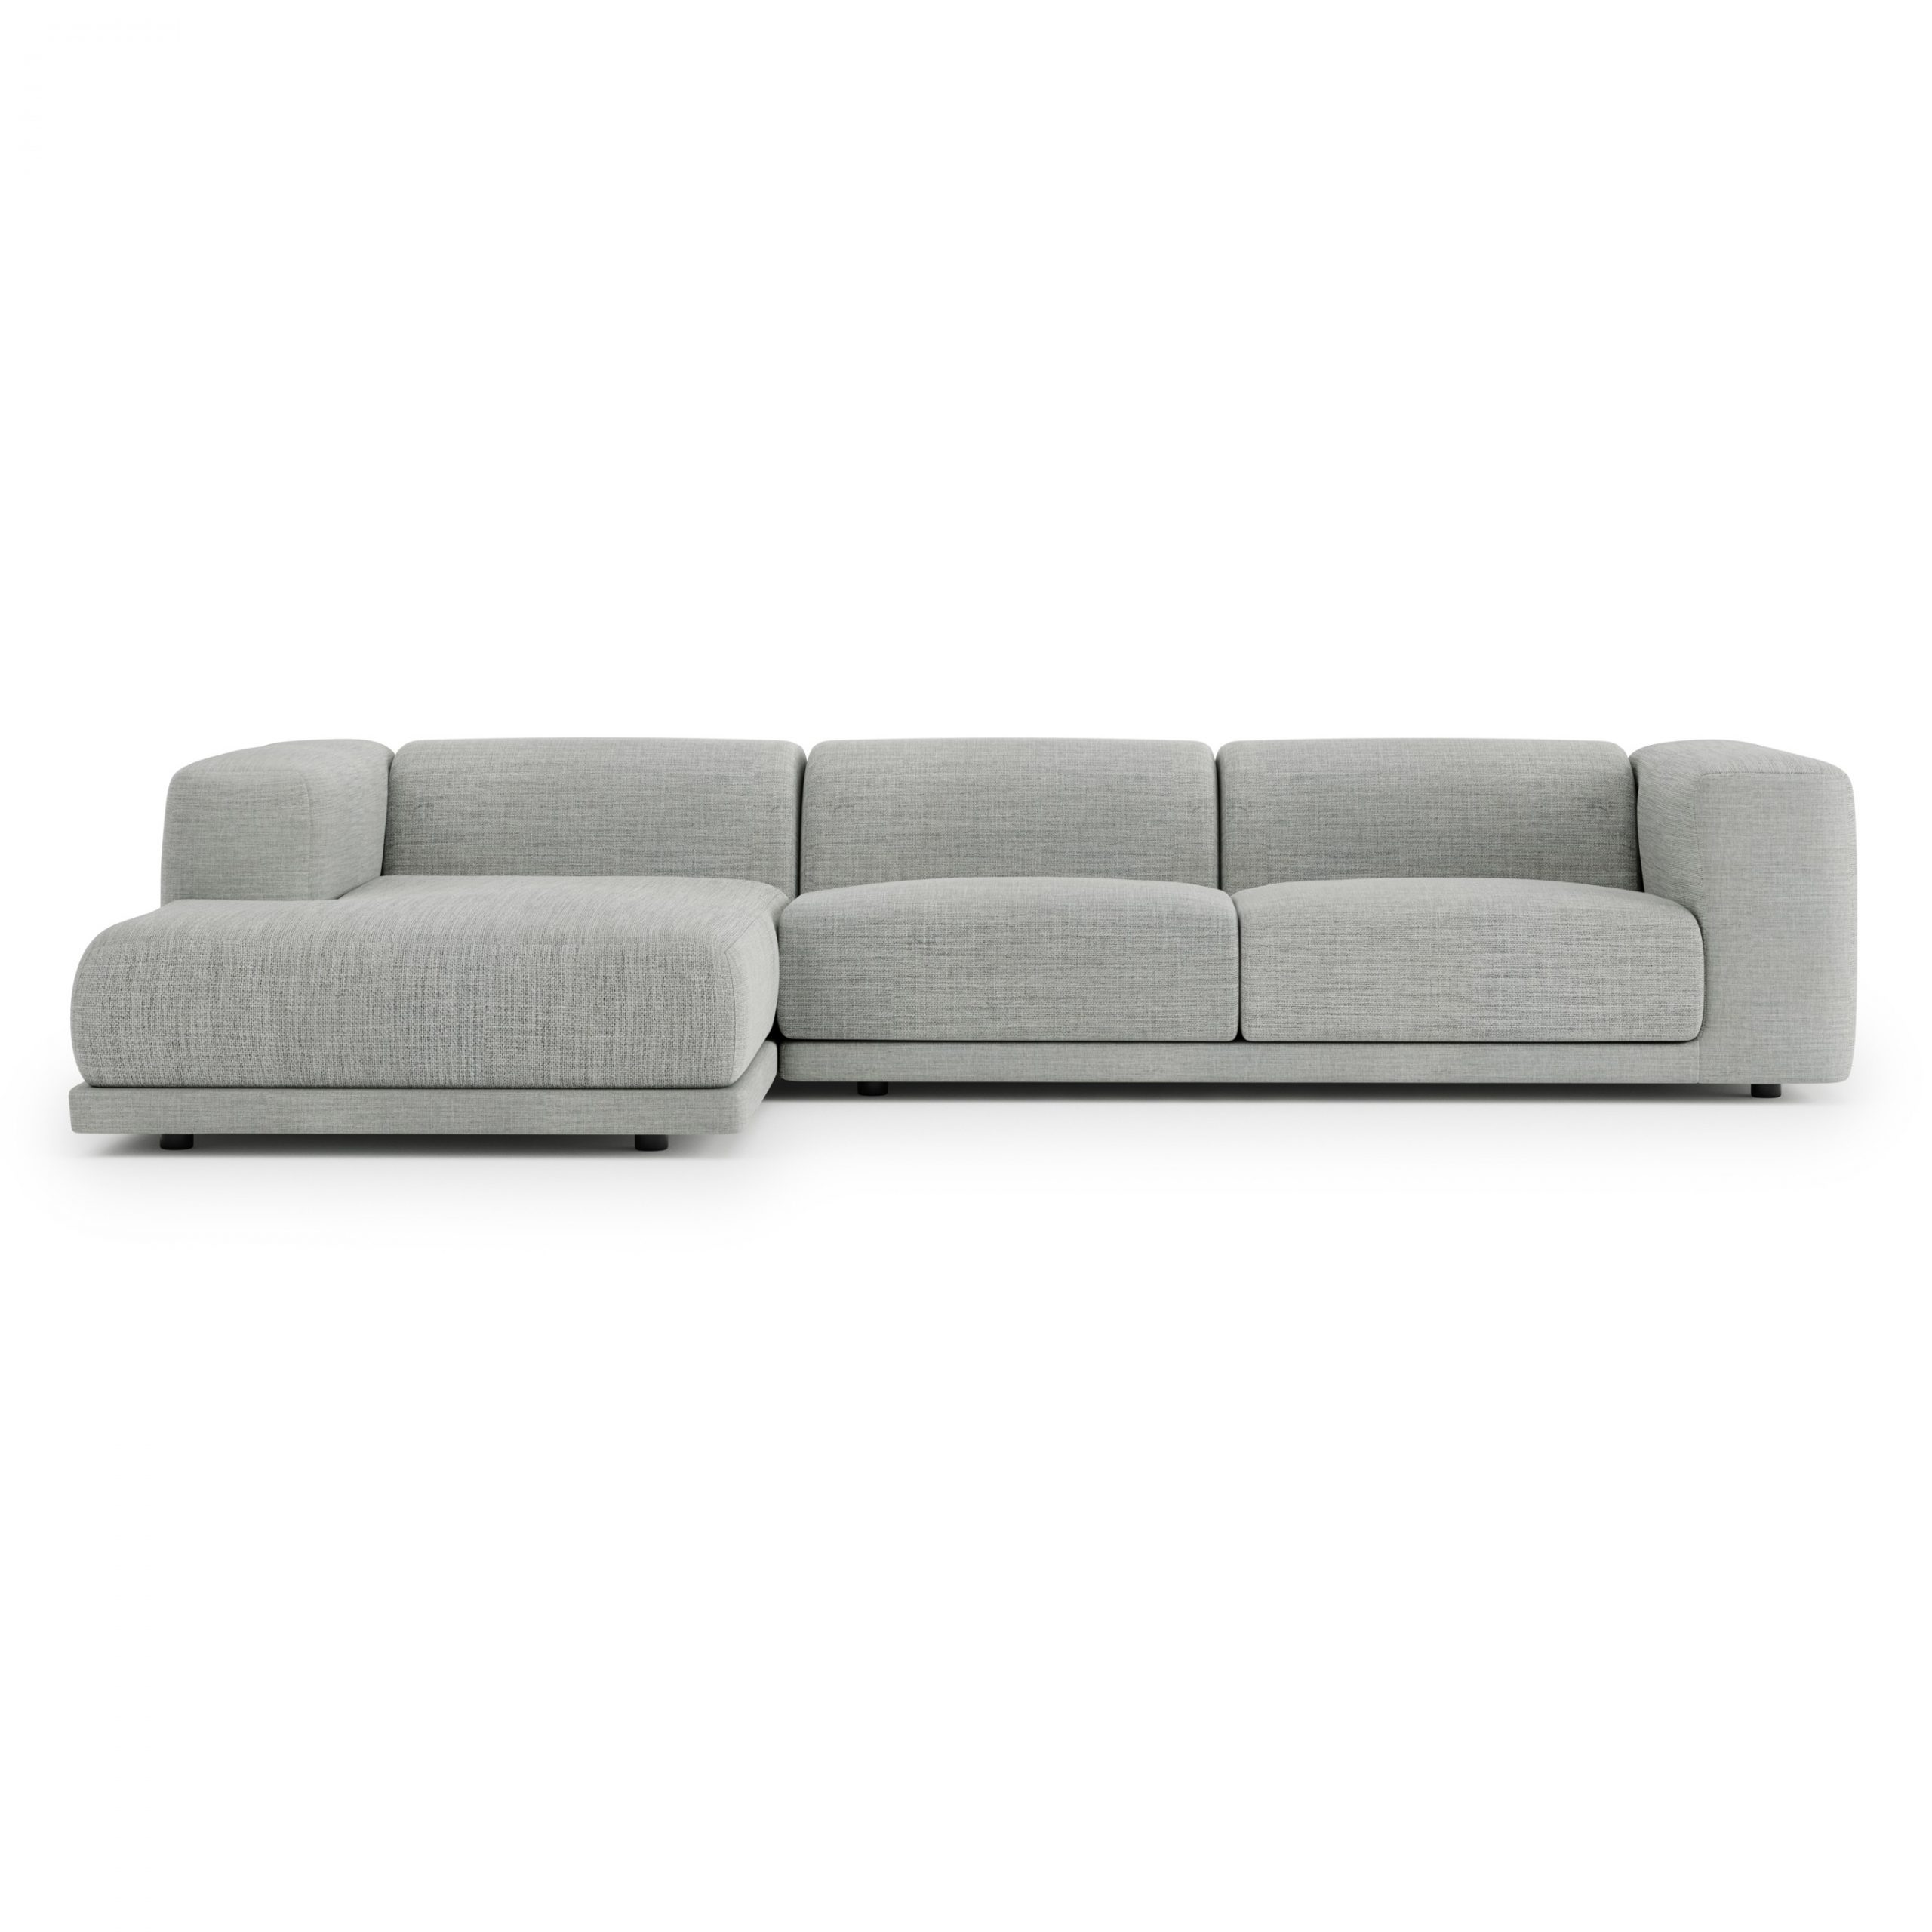 Jimmie 3 Piece Sectionals Seating Group With Cushions In Recent Case Furniture Kelston Sectional Sofa Lh Tundra Fabric (Gallery 17 of 25)